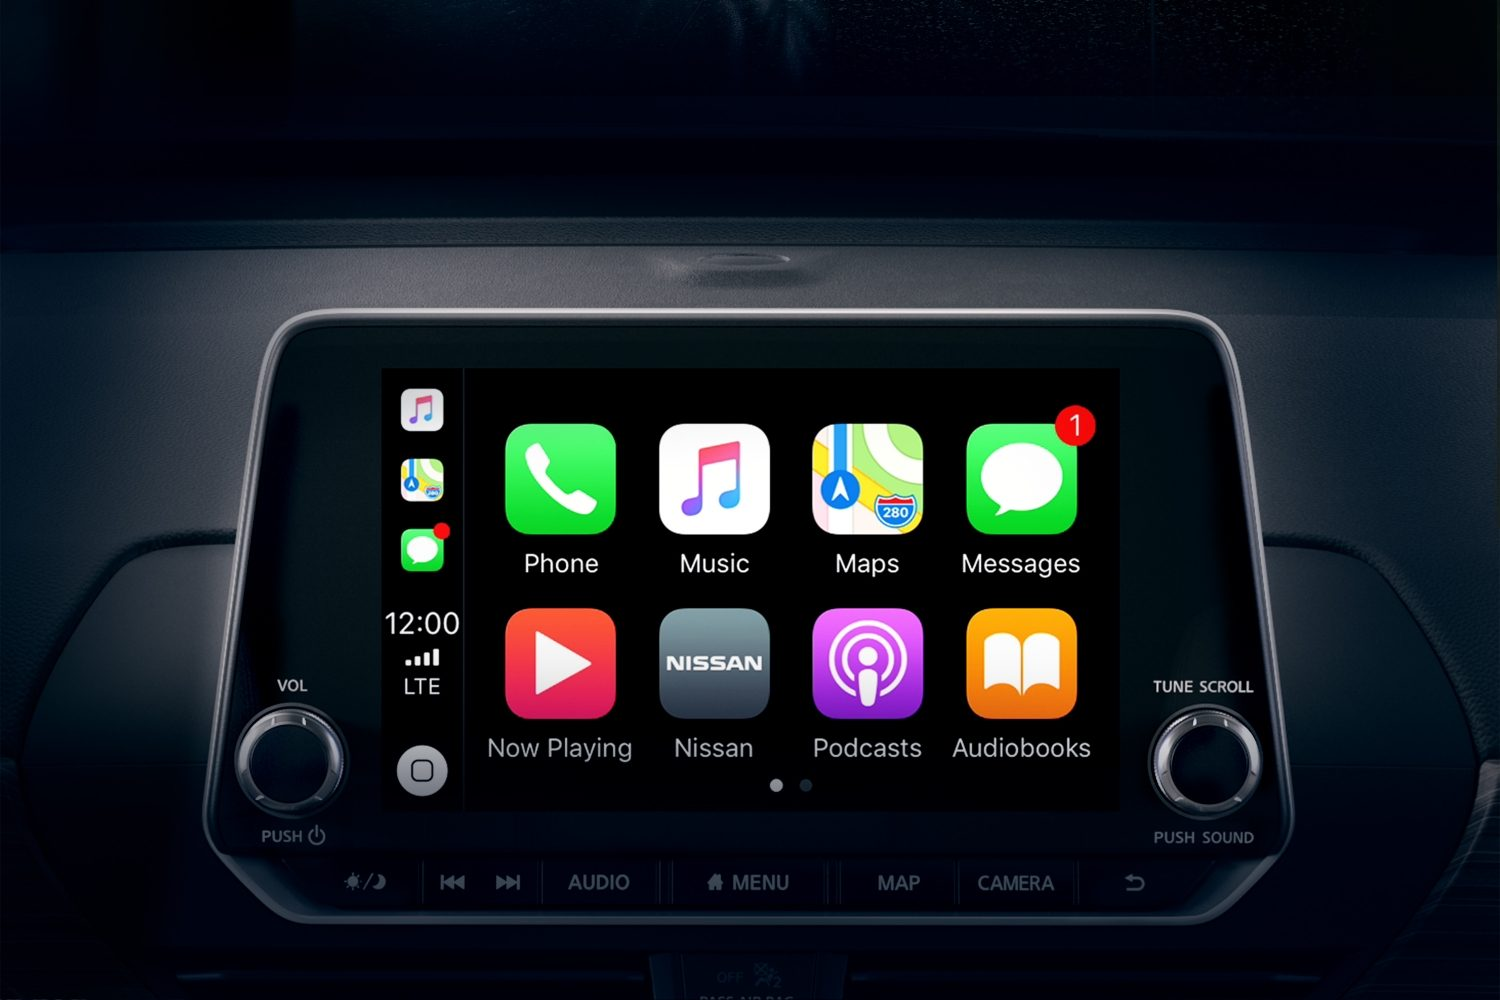 2019 nissan Altima touchscreen apple carplay